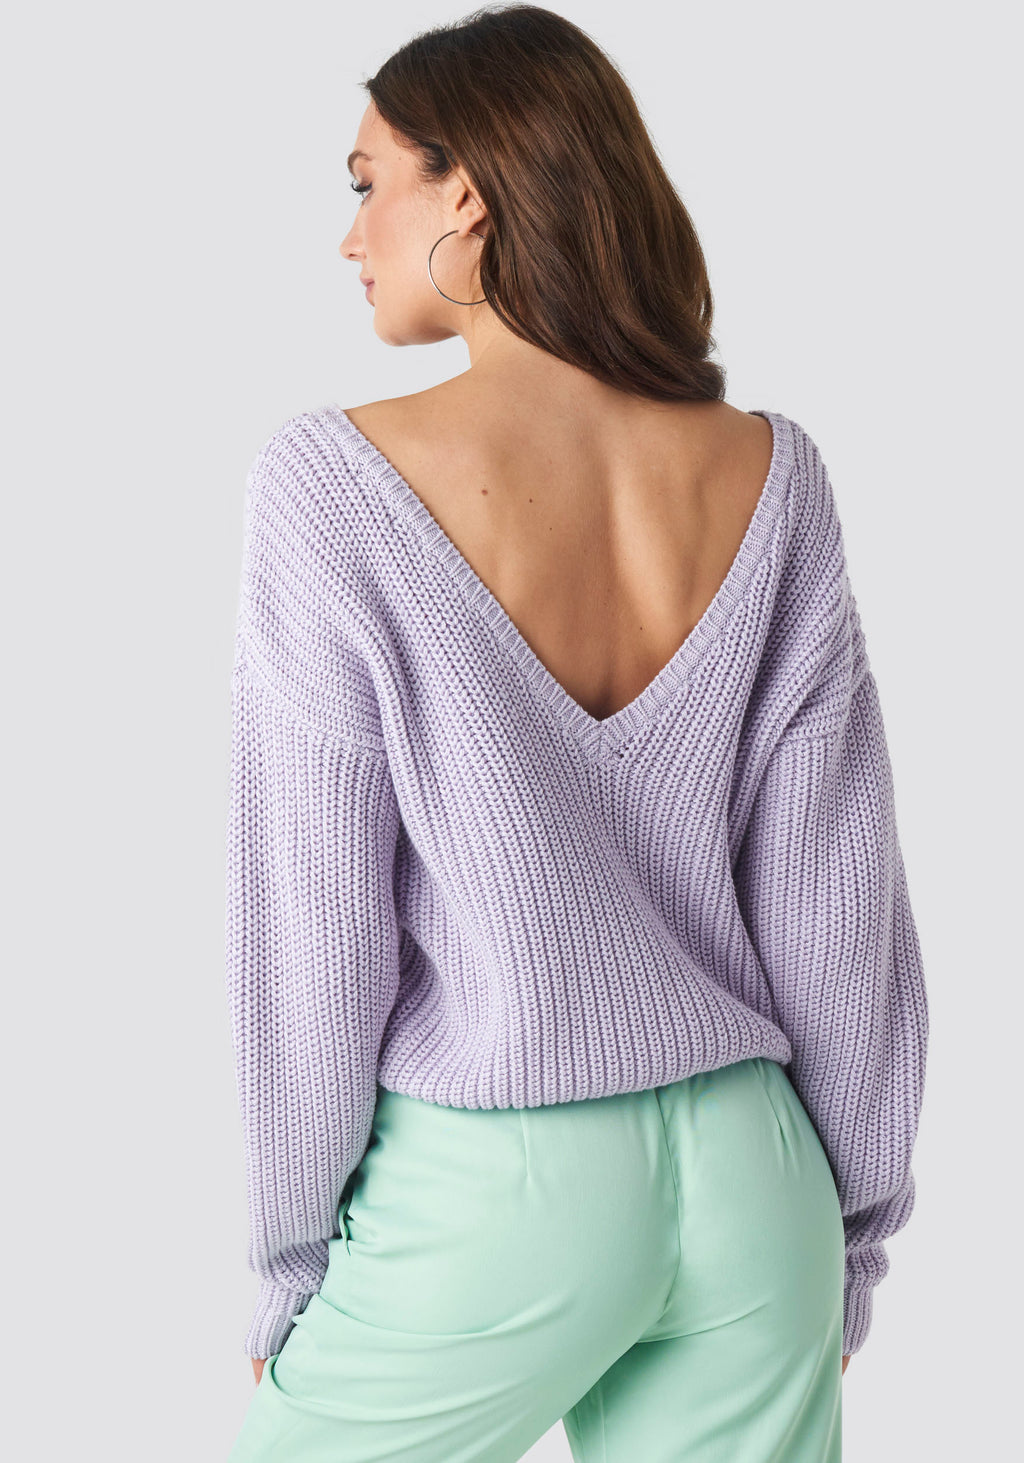 Sarah V-Neck Knit - Lilac - LittleCuteCorner.